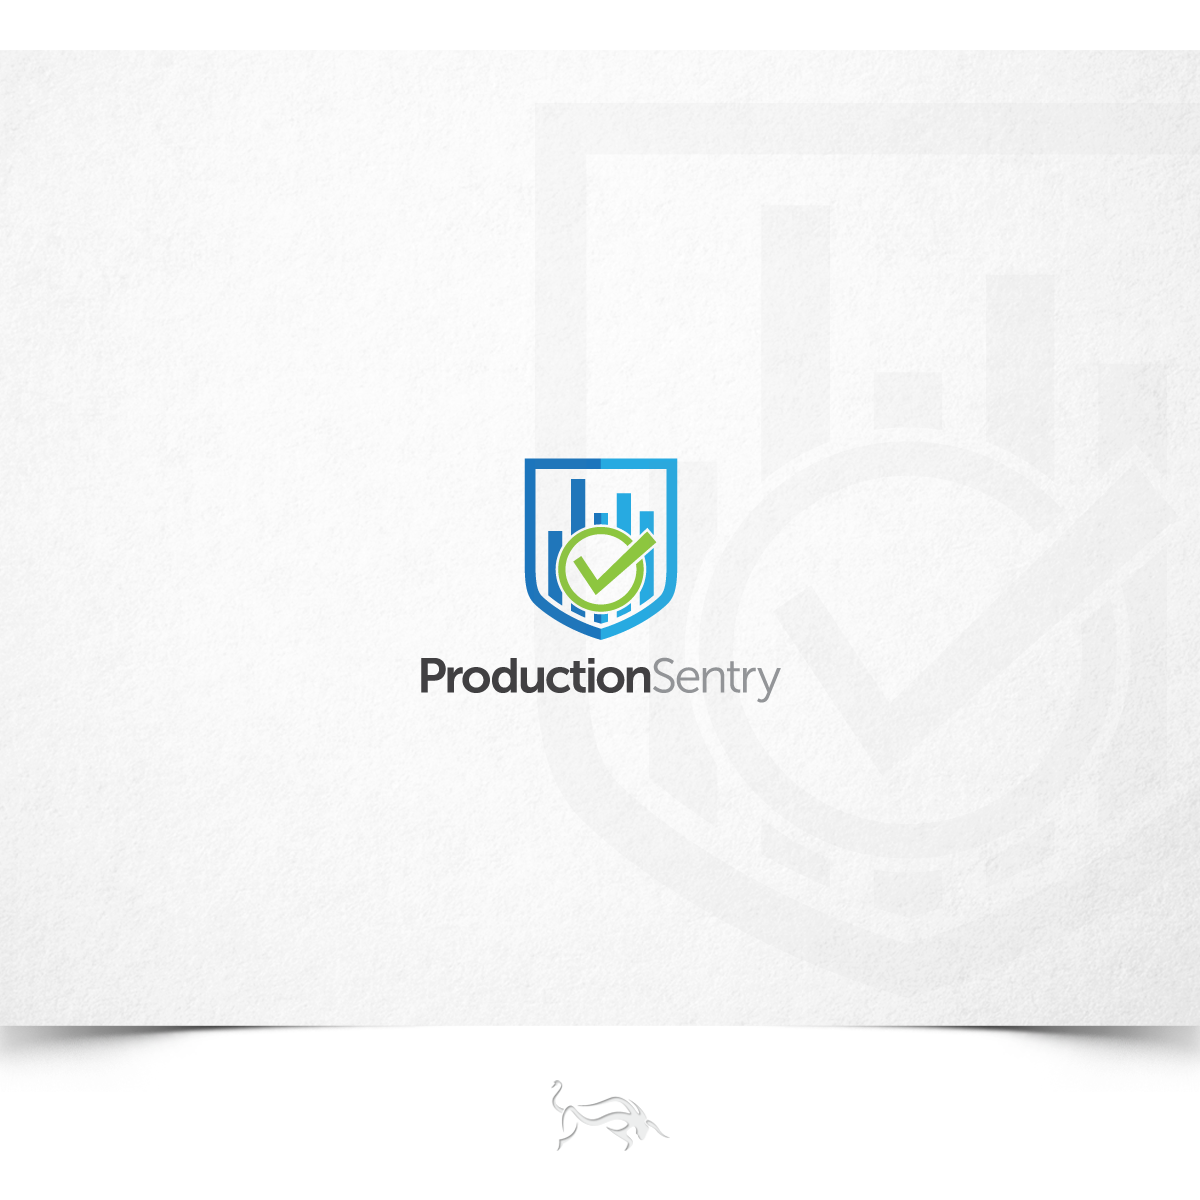 Help Production Sentry with a new logo